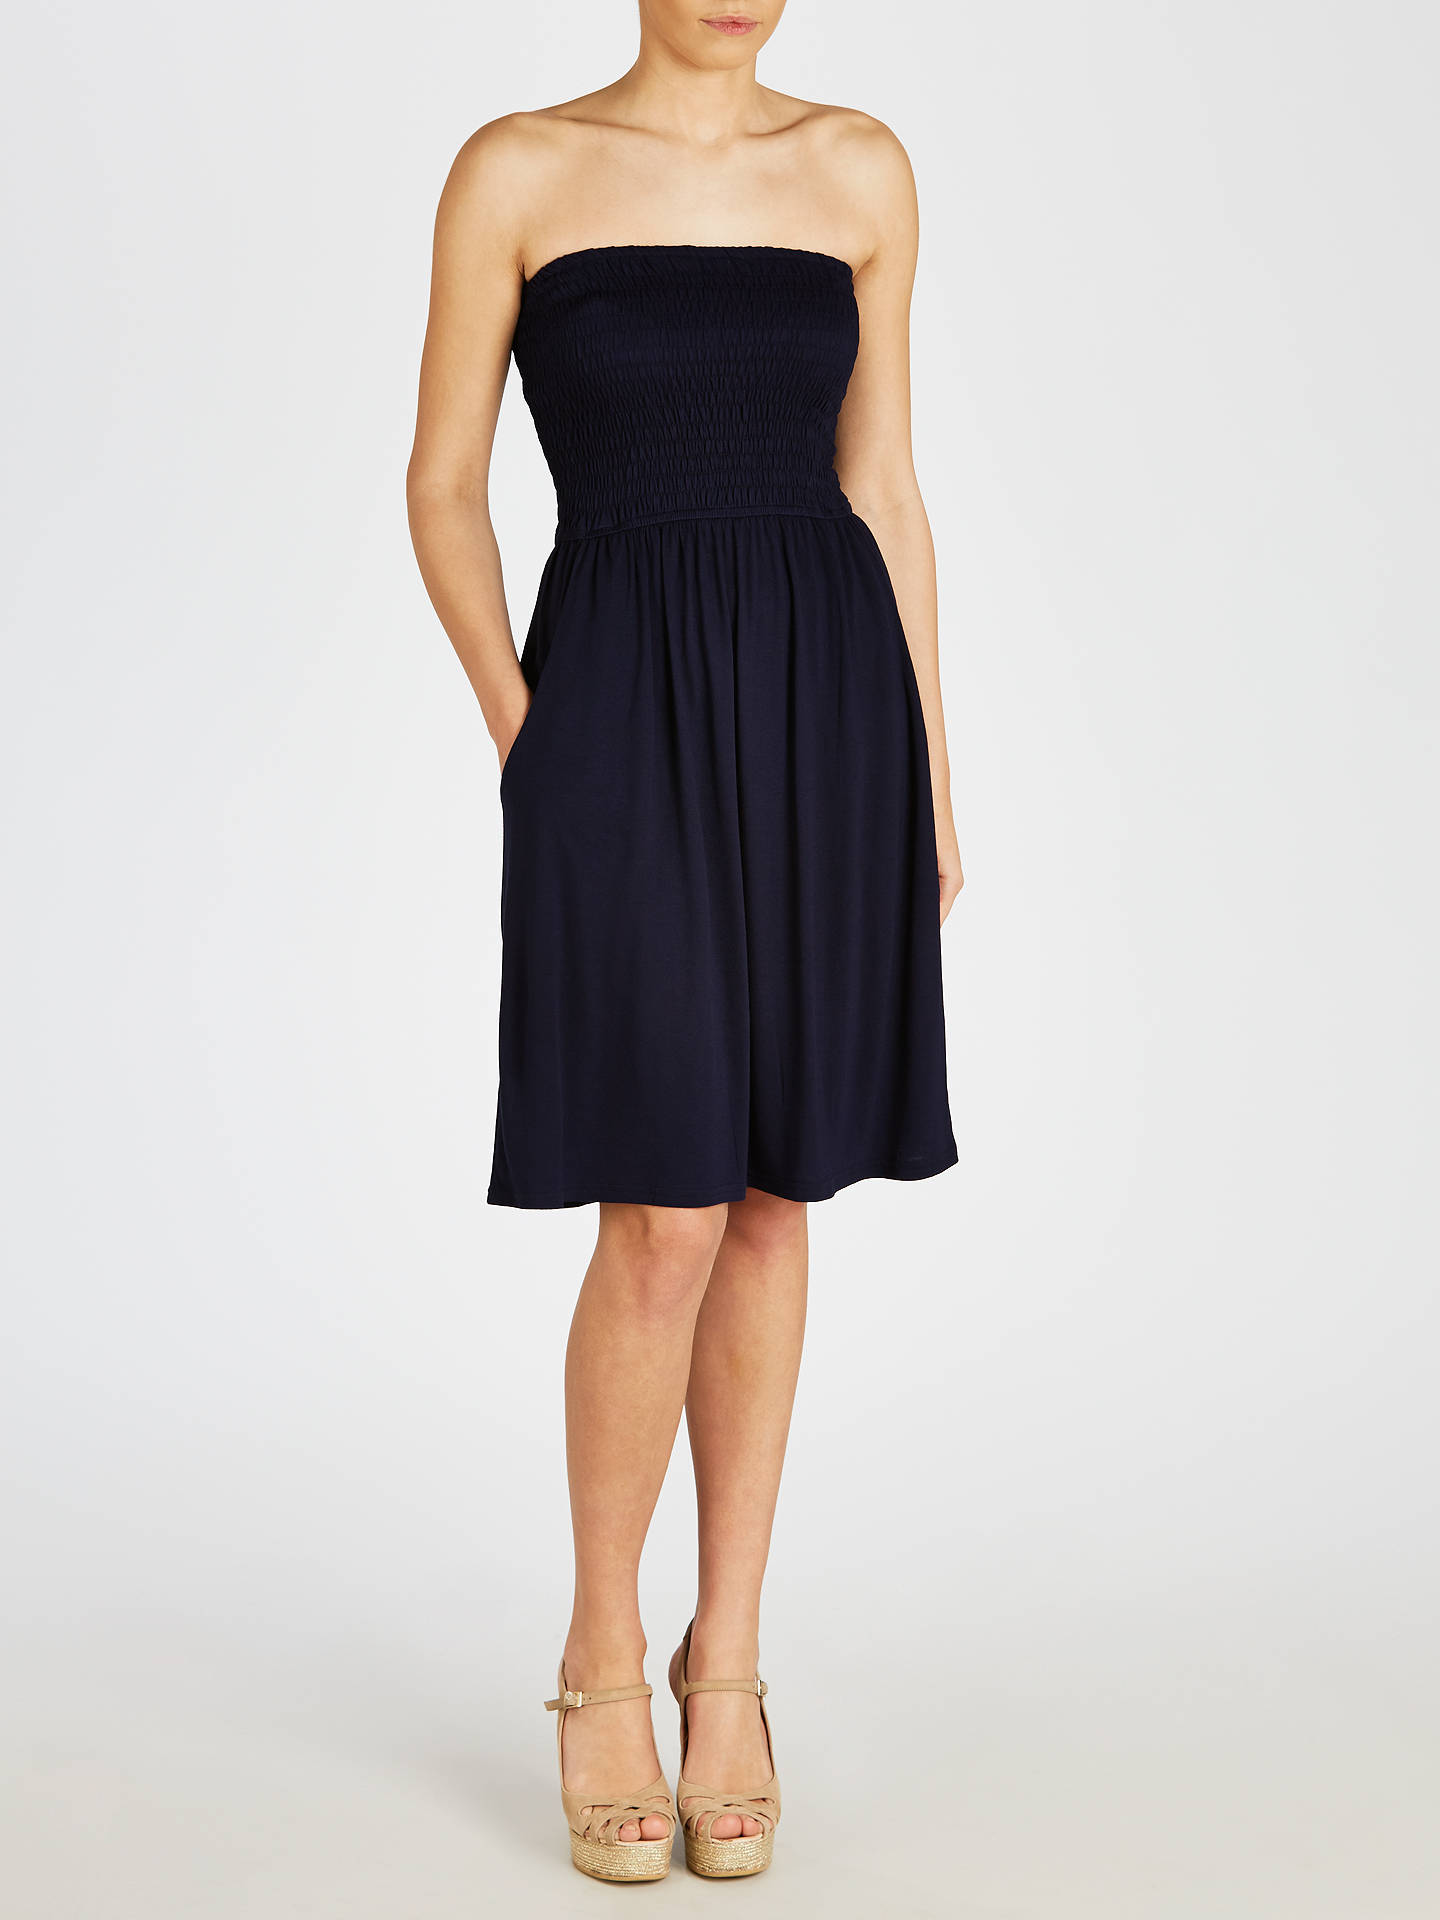 BuyJohn Lewis & Partners Jersey Bandeau Dress, Navy, S Online at johnlewis.com